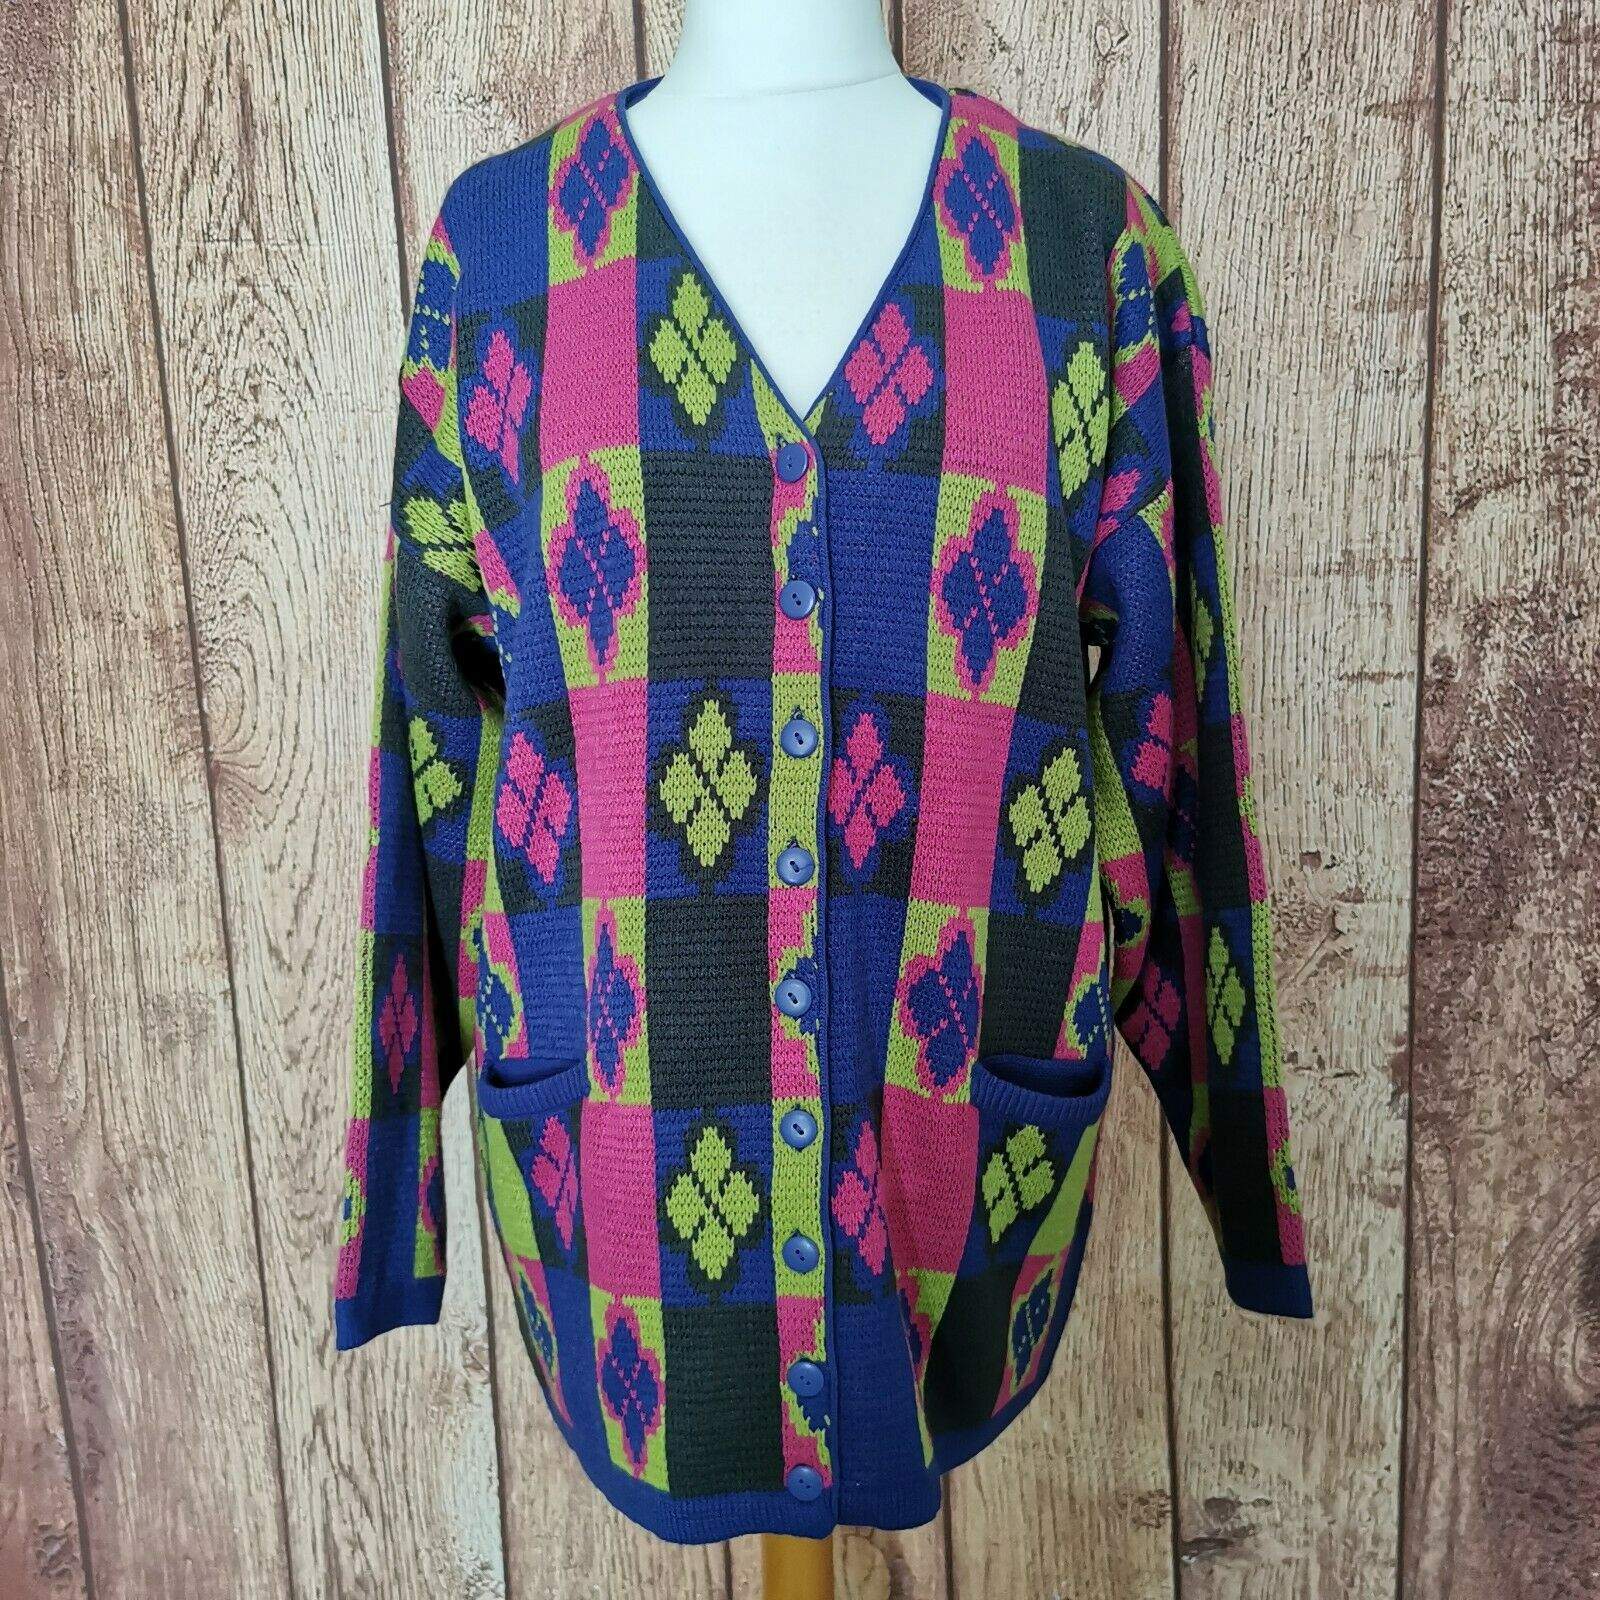 Vintage Prestige Collection Cardigan One Size Purple Green Pink 80s Grannycore